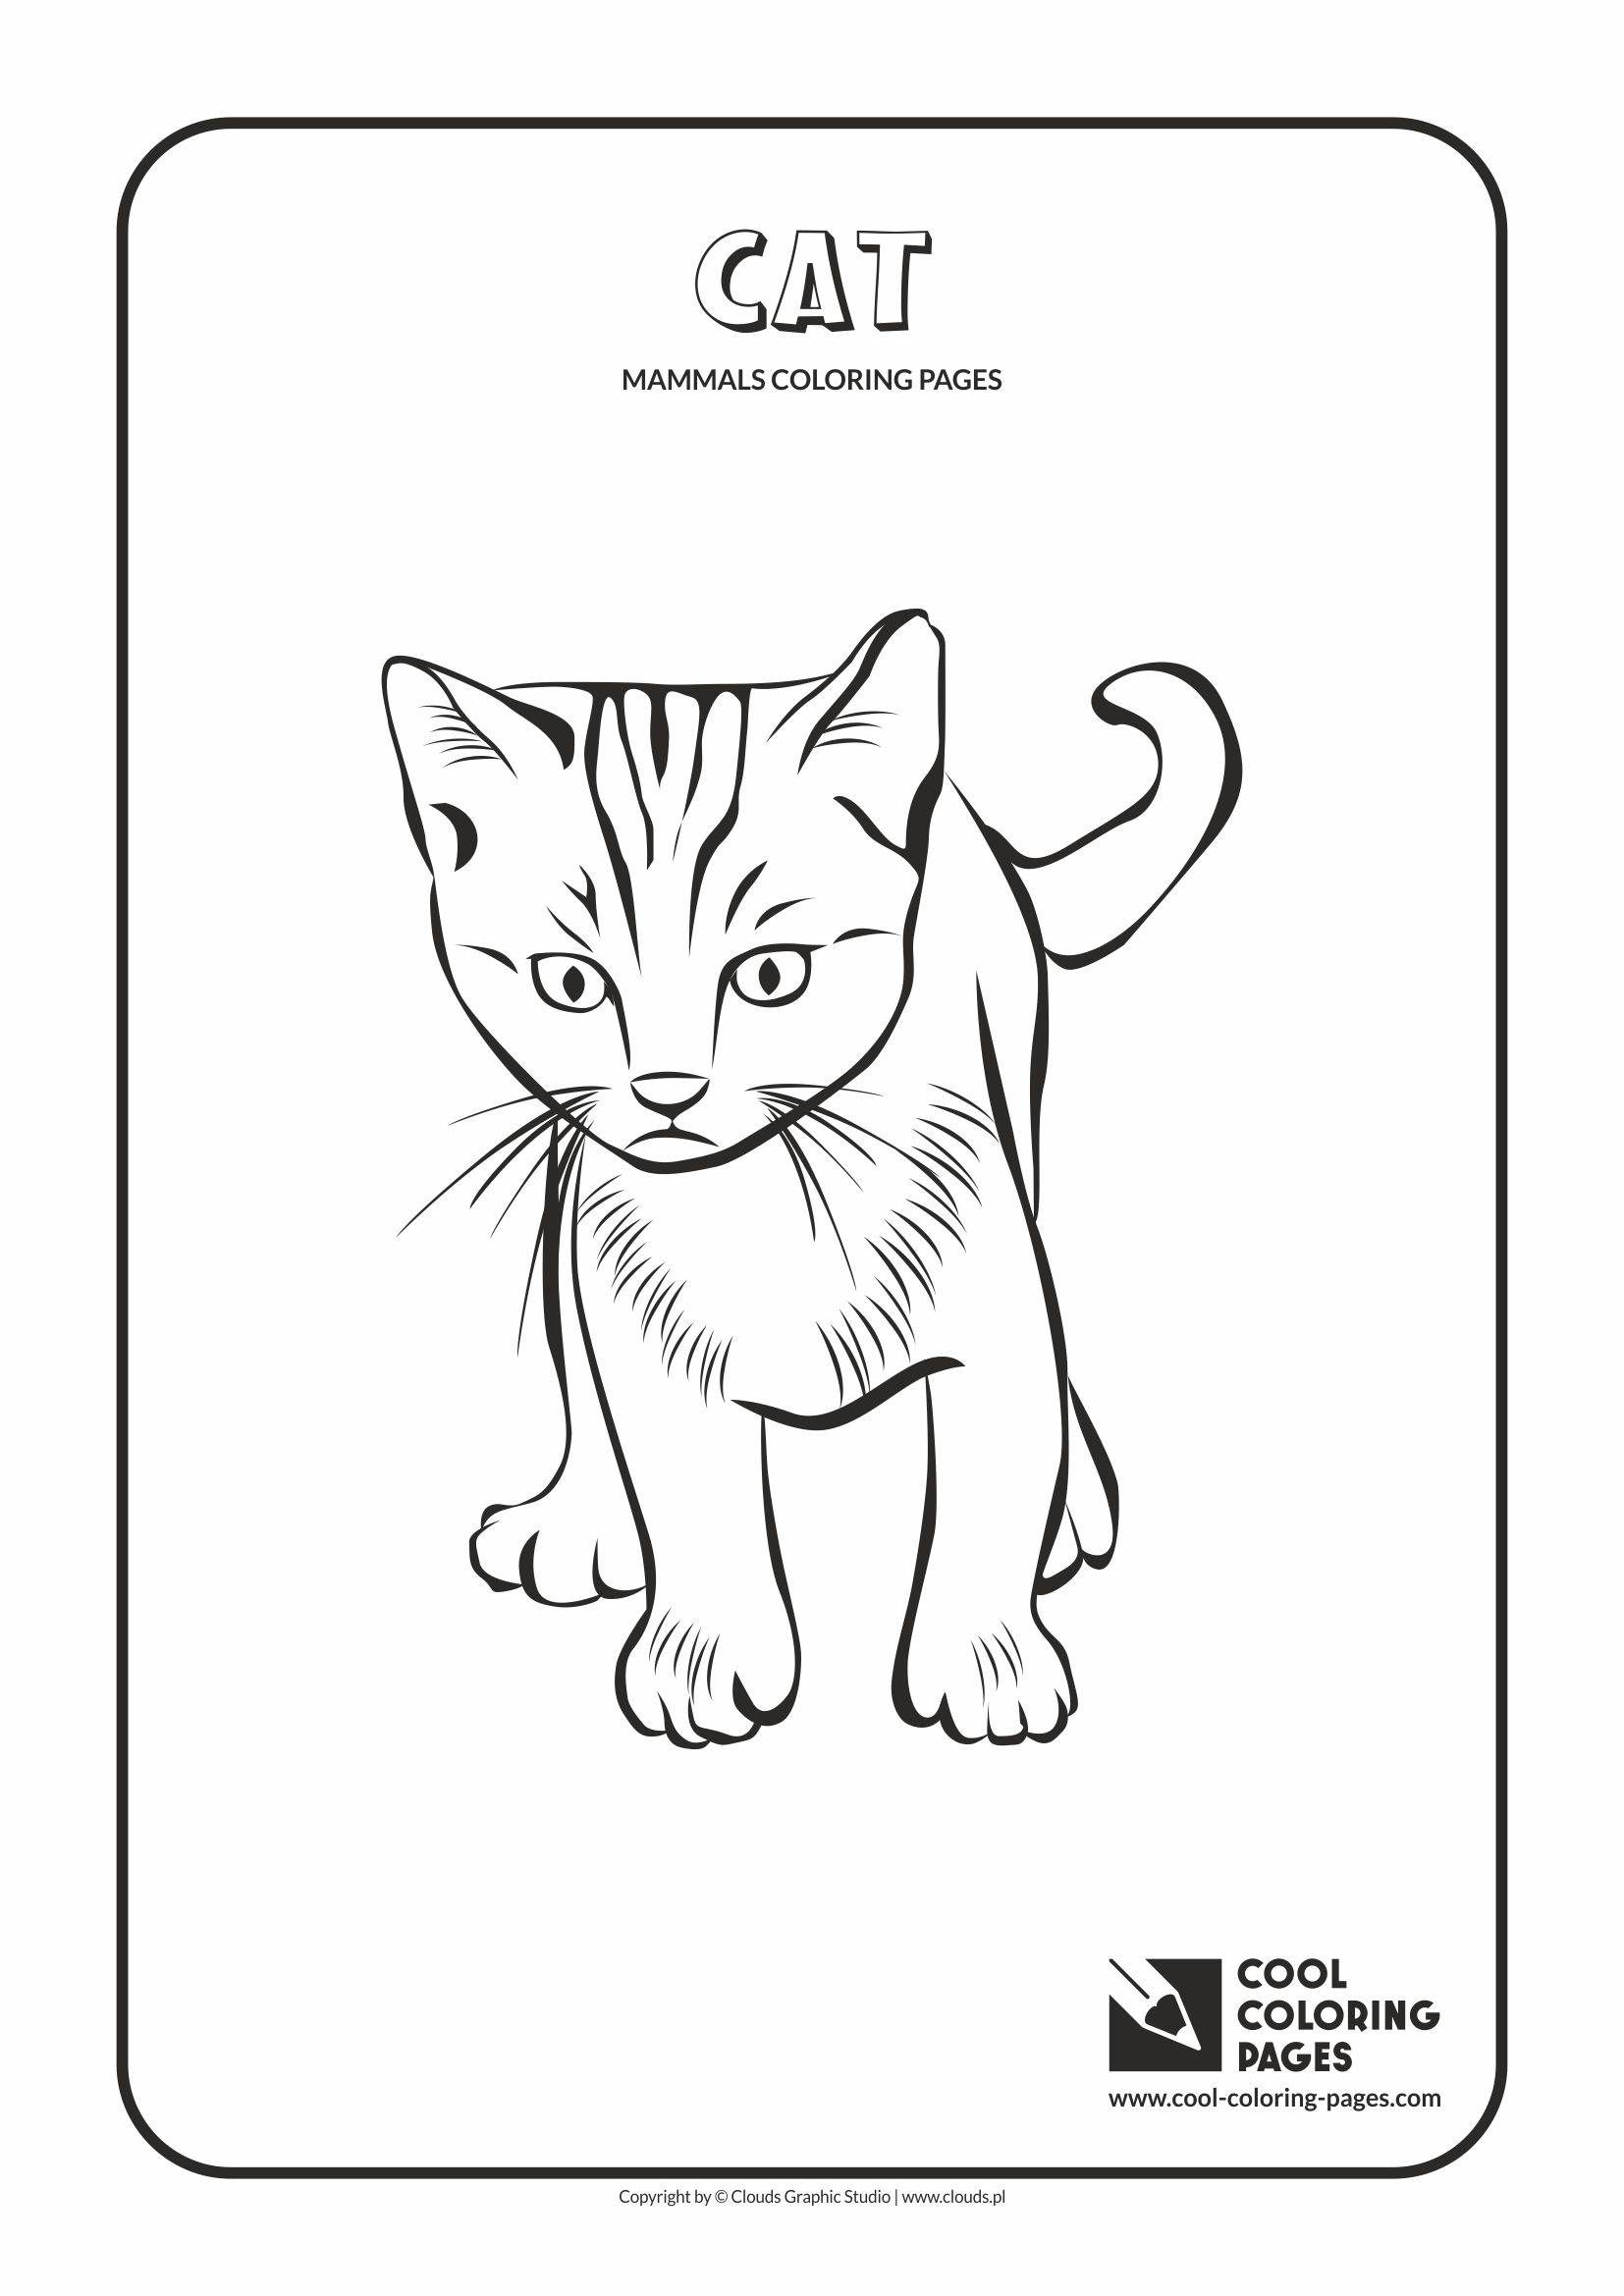 Cool Coloring Pages - Animals / Mammals. Coloring page with cat